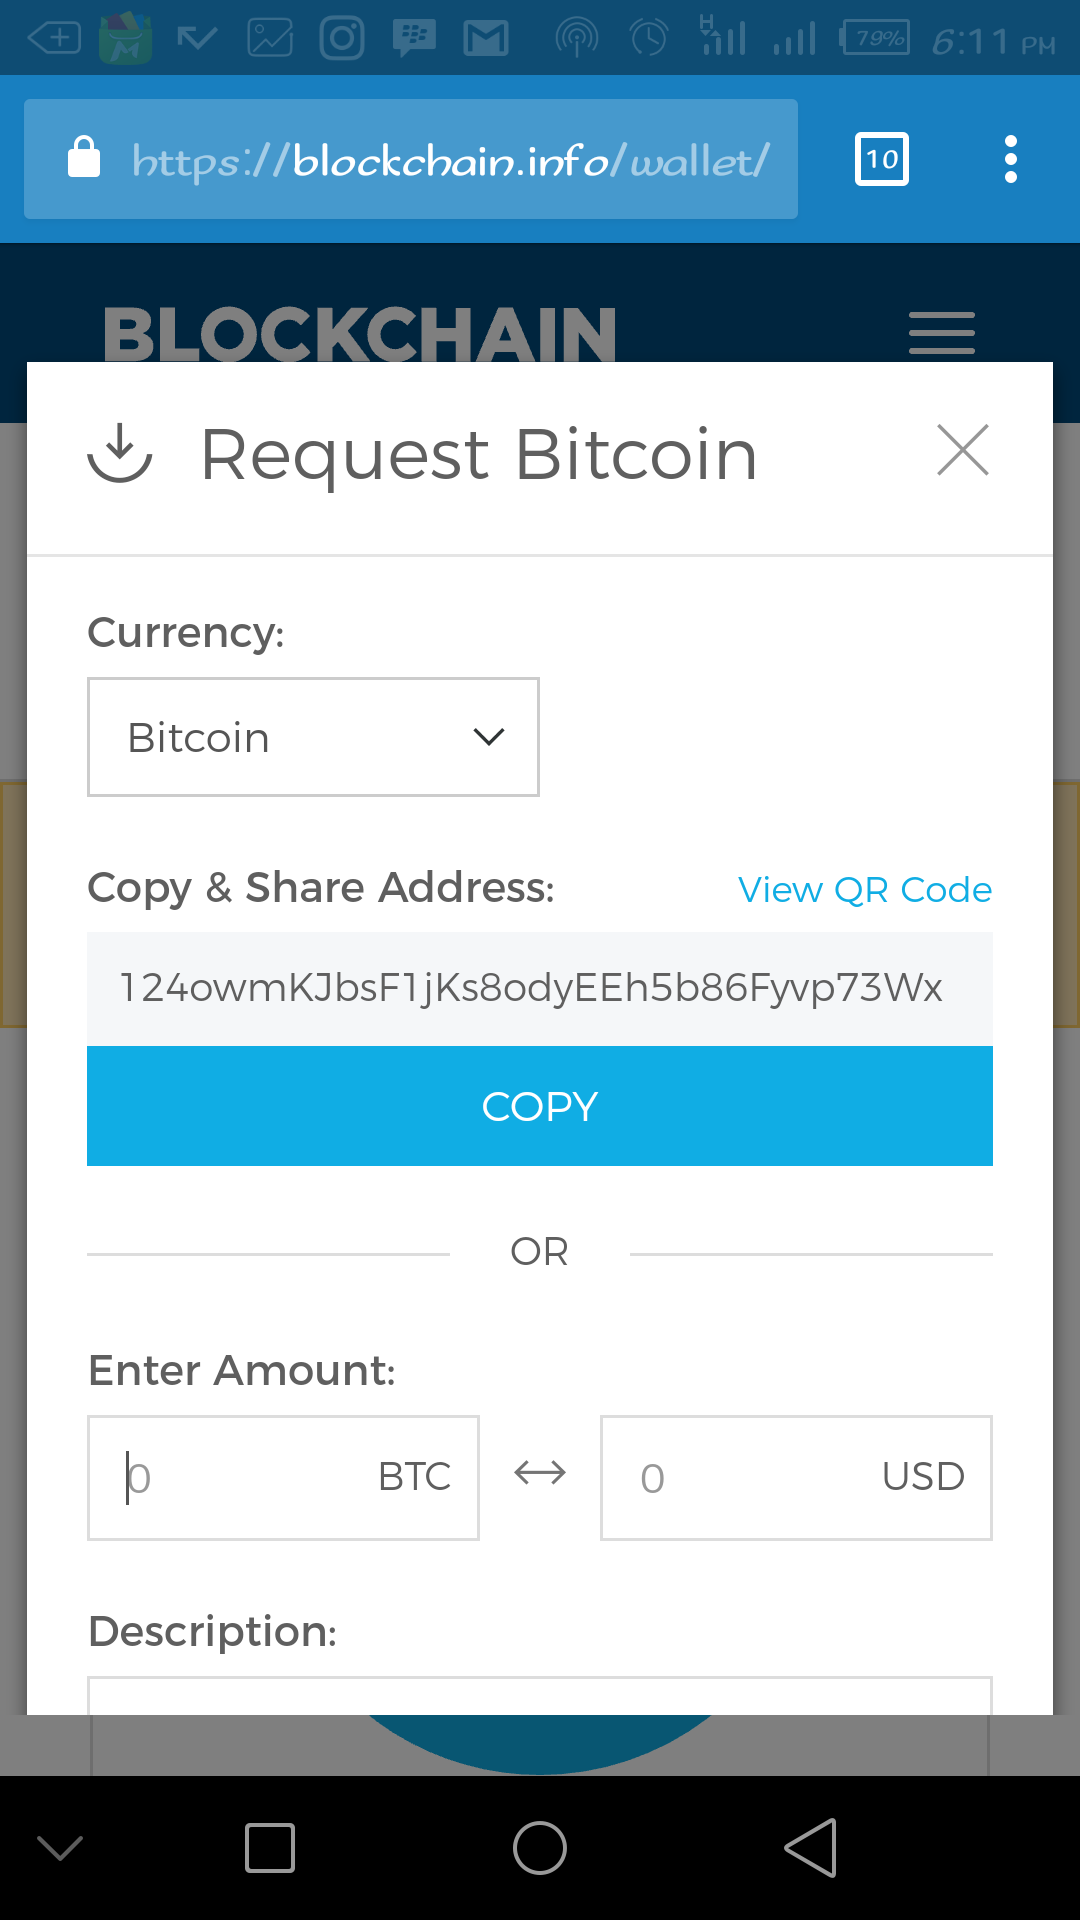 FreeBitcoin - Free Bitcoin Wallet, Faucet, Lottery and Dice!